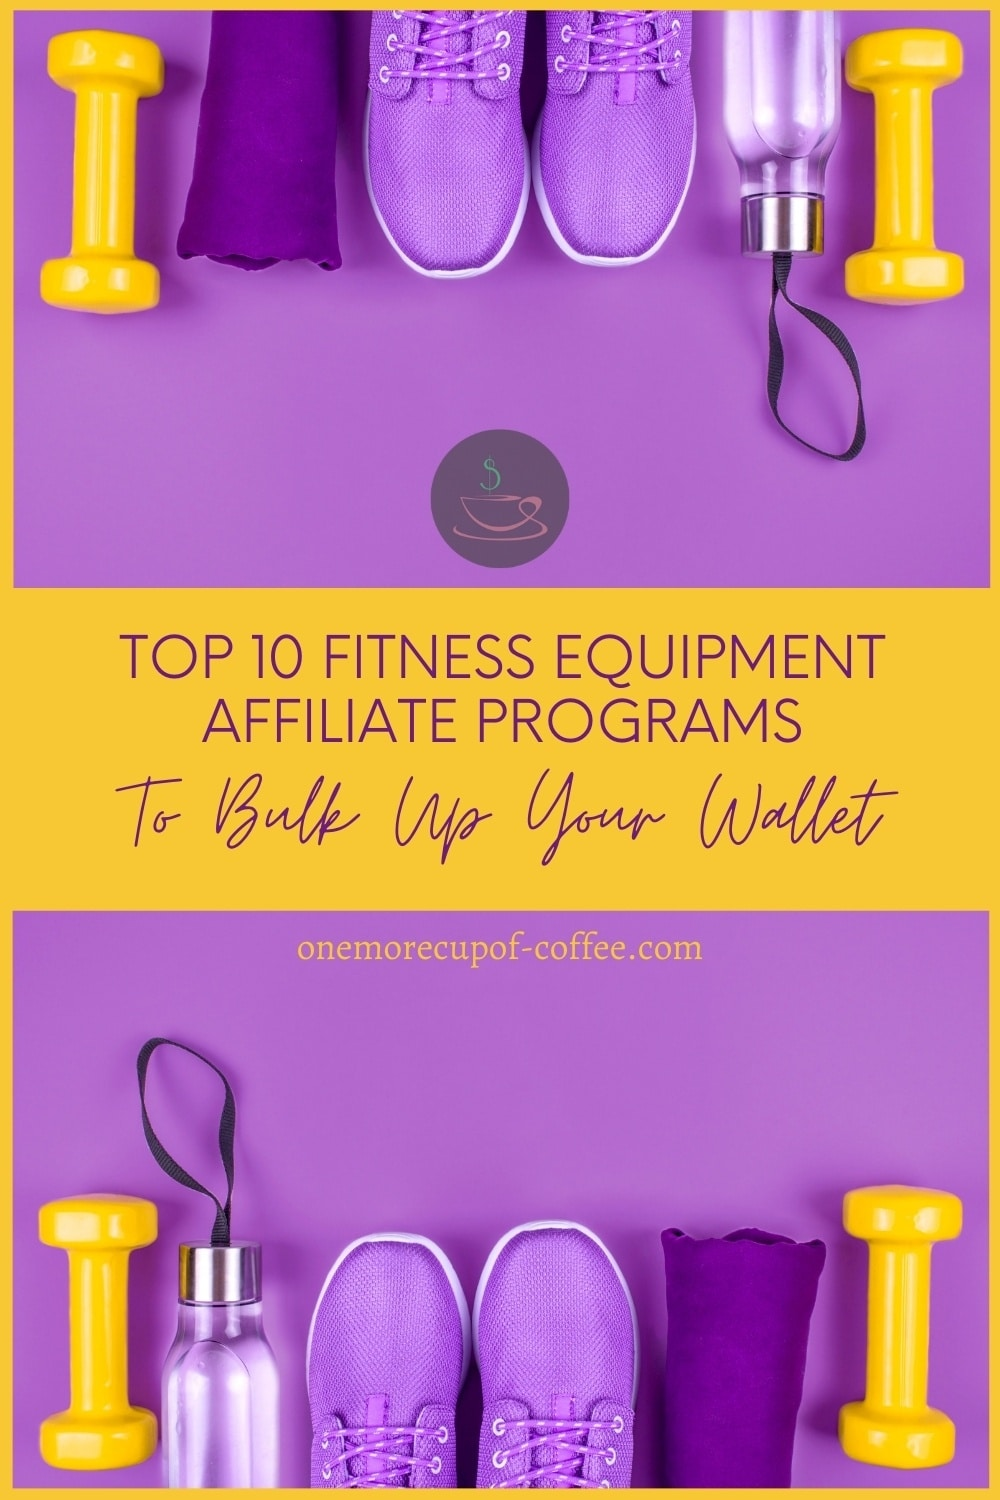 """top view image of violet sneakers, water bottle, violet rolled towel, and yellow dumbbells, against a violet background; with text overlay """"Top 10 Fitness Equipment Affiliate Programs To Bulk Up Your Wallet"""""""